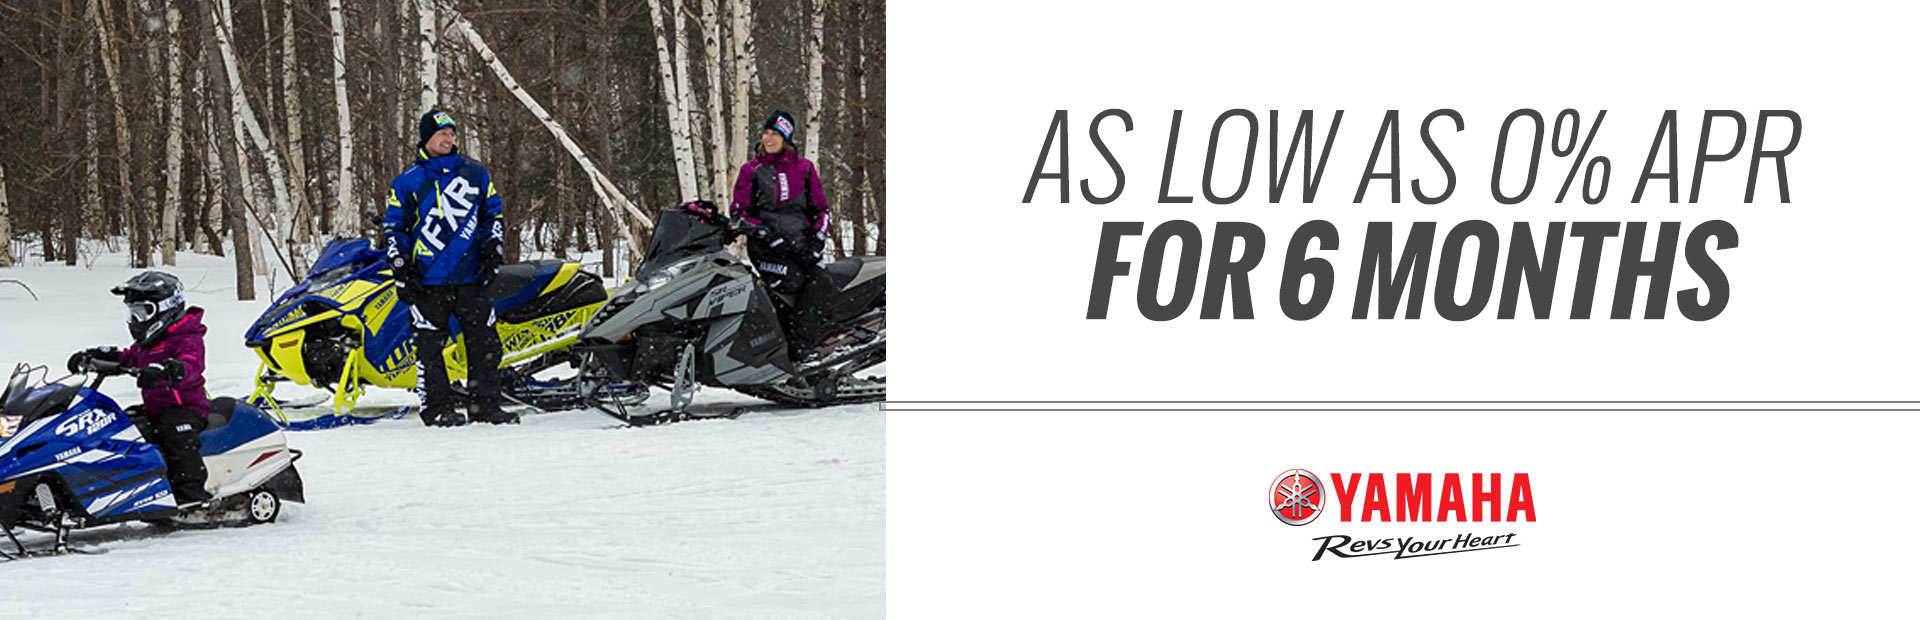 Yamaha: As Low as 0% APR For 6 Months